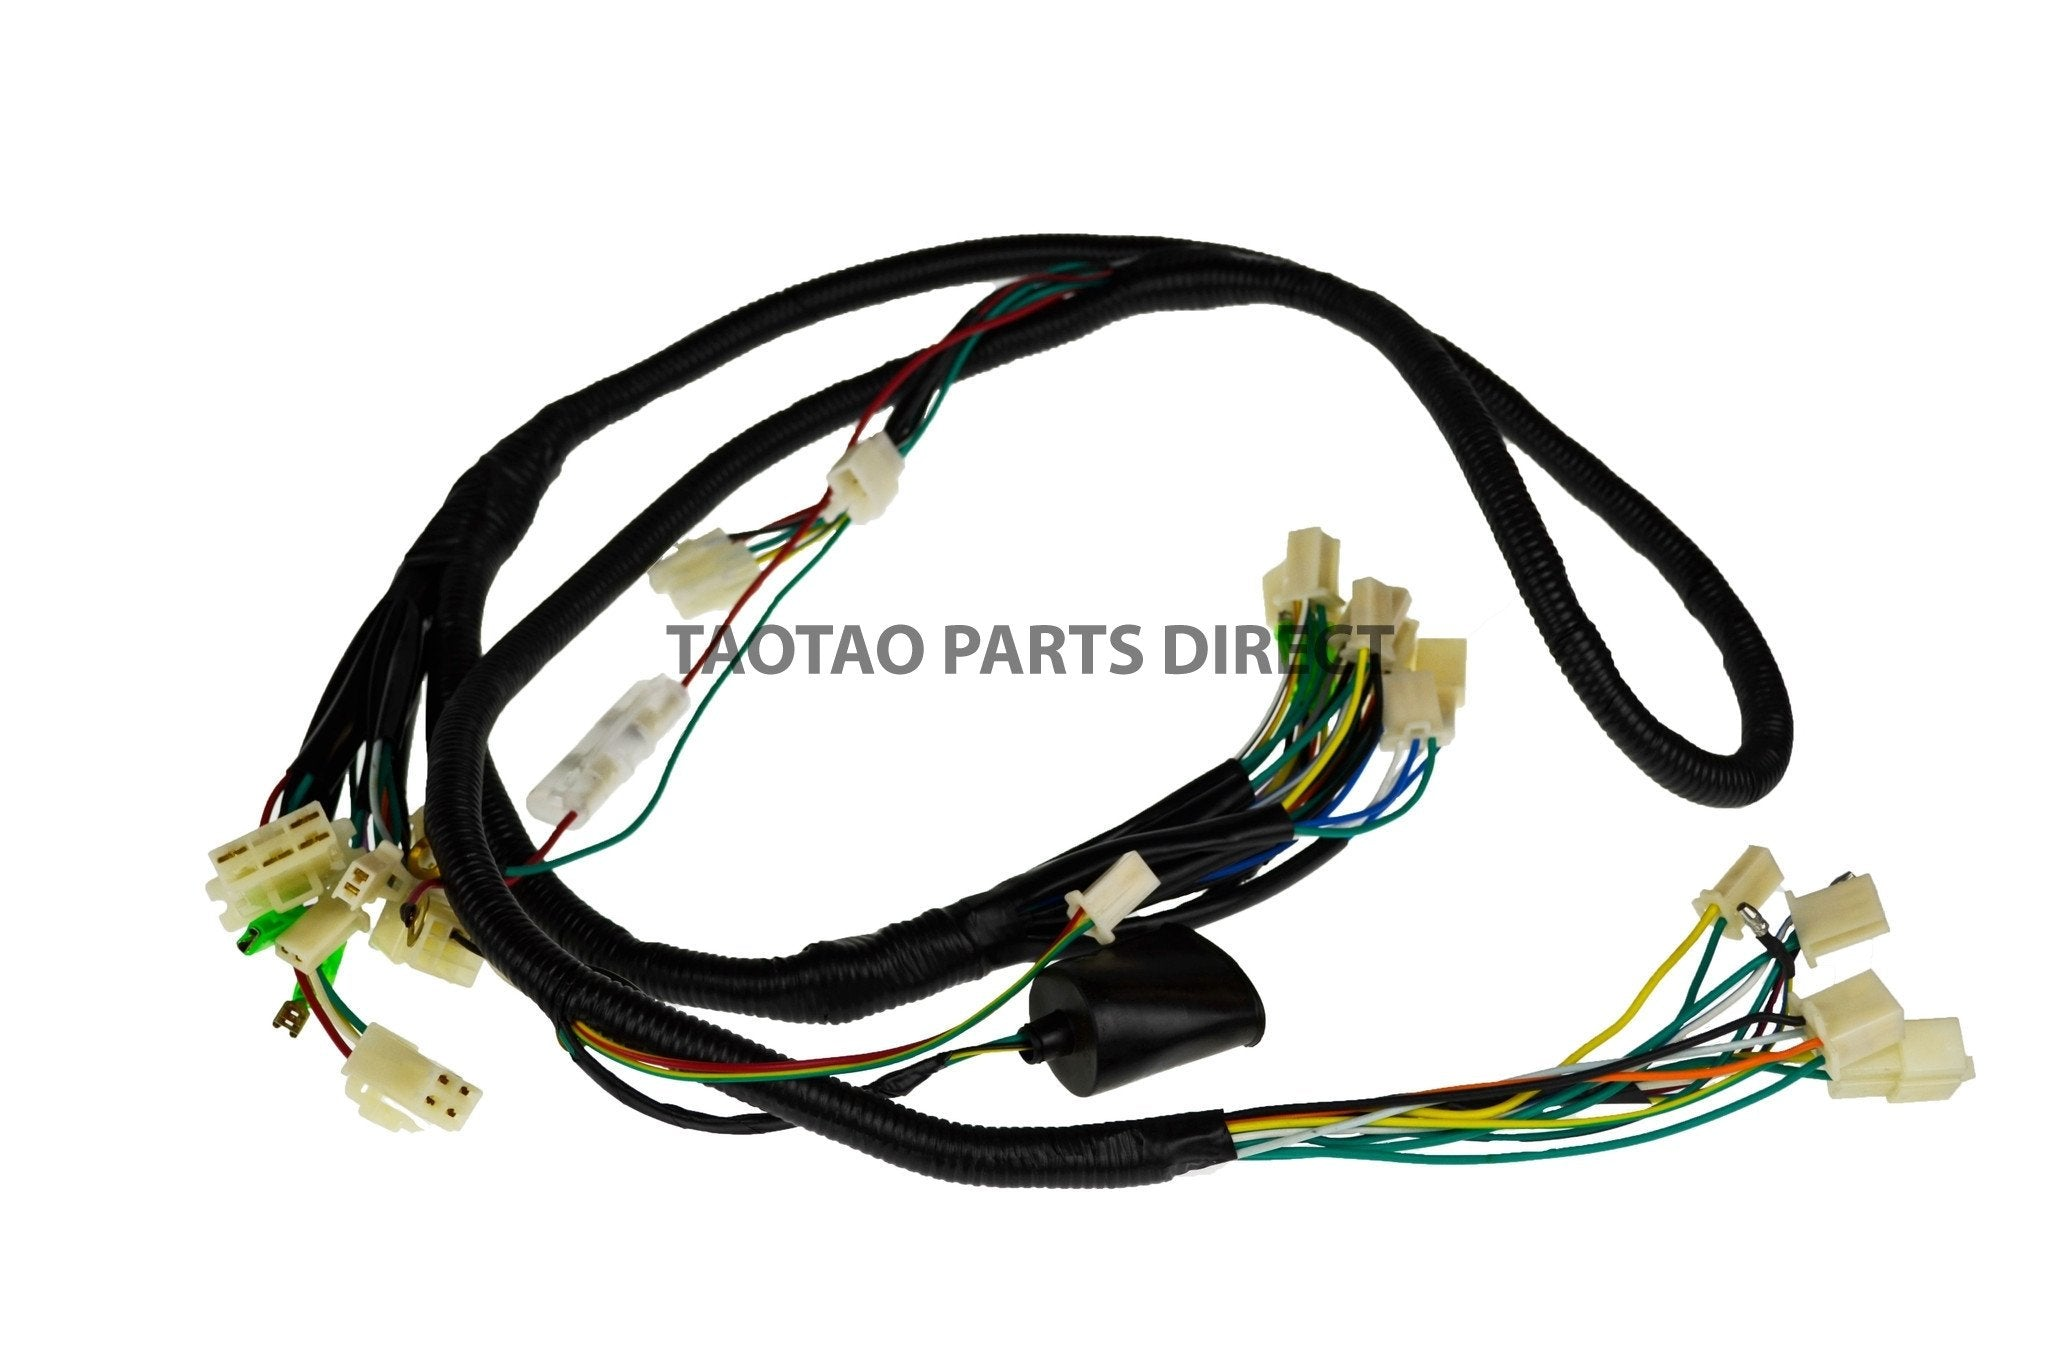 Atm50a1 Wire Harness 18 Taotao Parts Direct Electrical Wiring Other Models